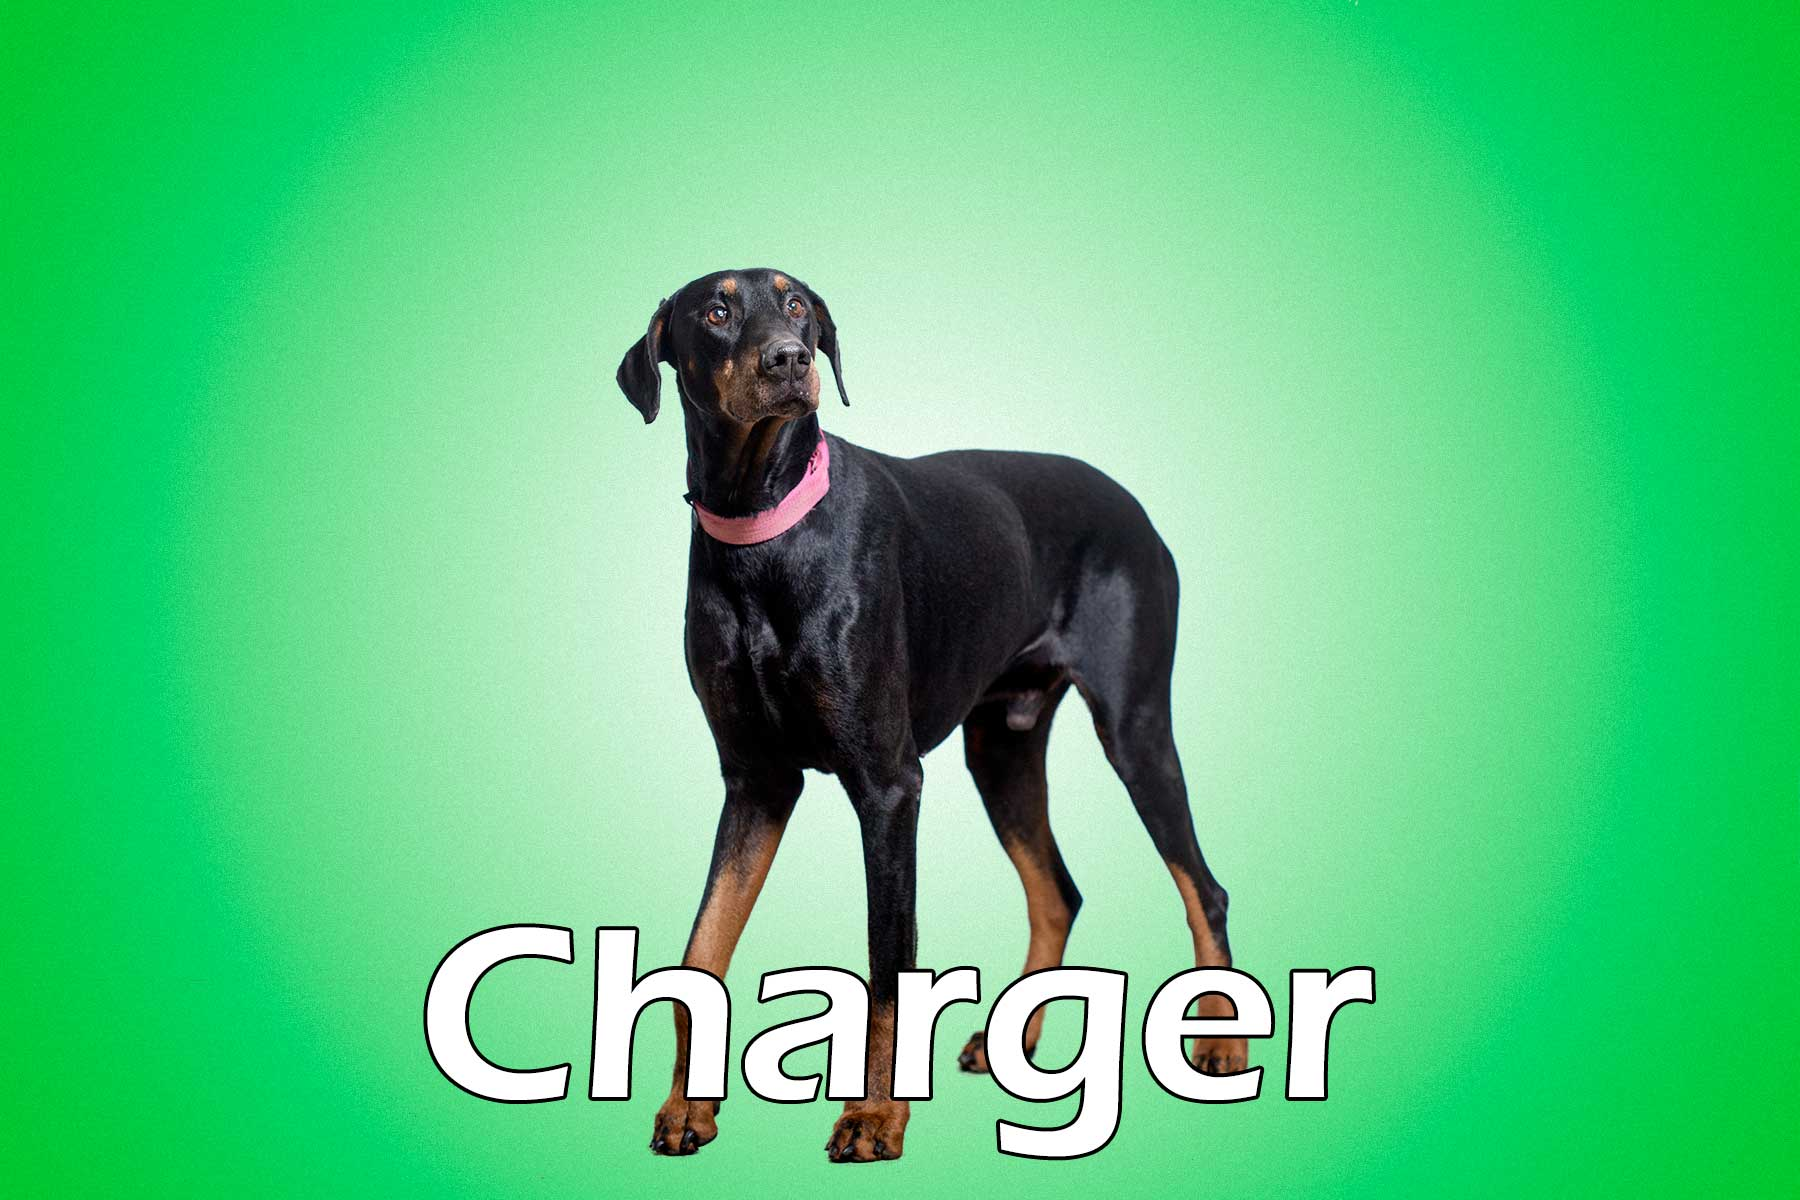 Charger_20160121_144042_052011001770_58580b2_Charger